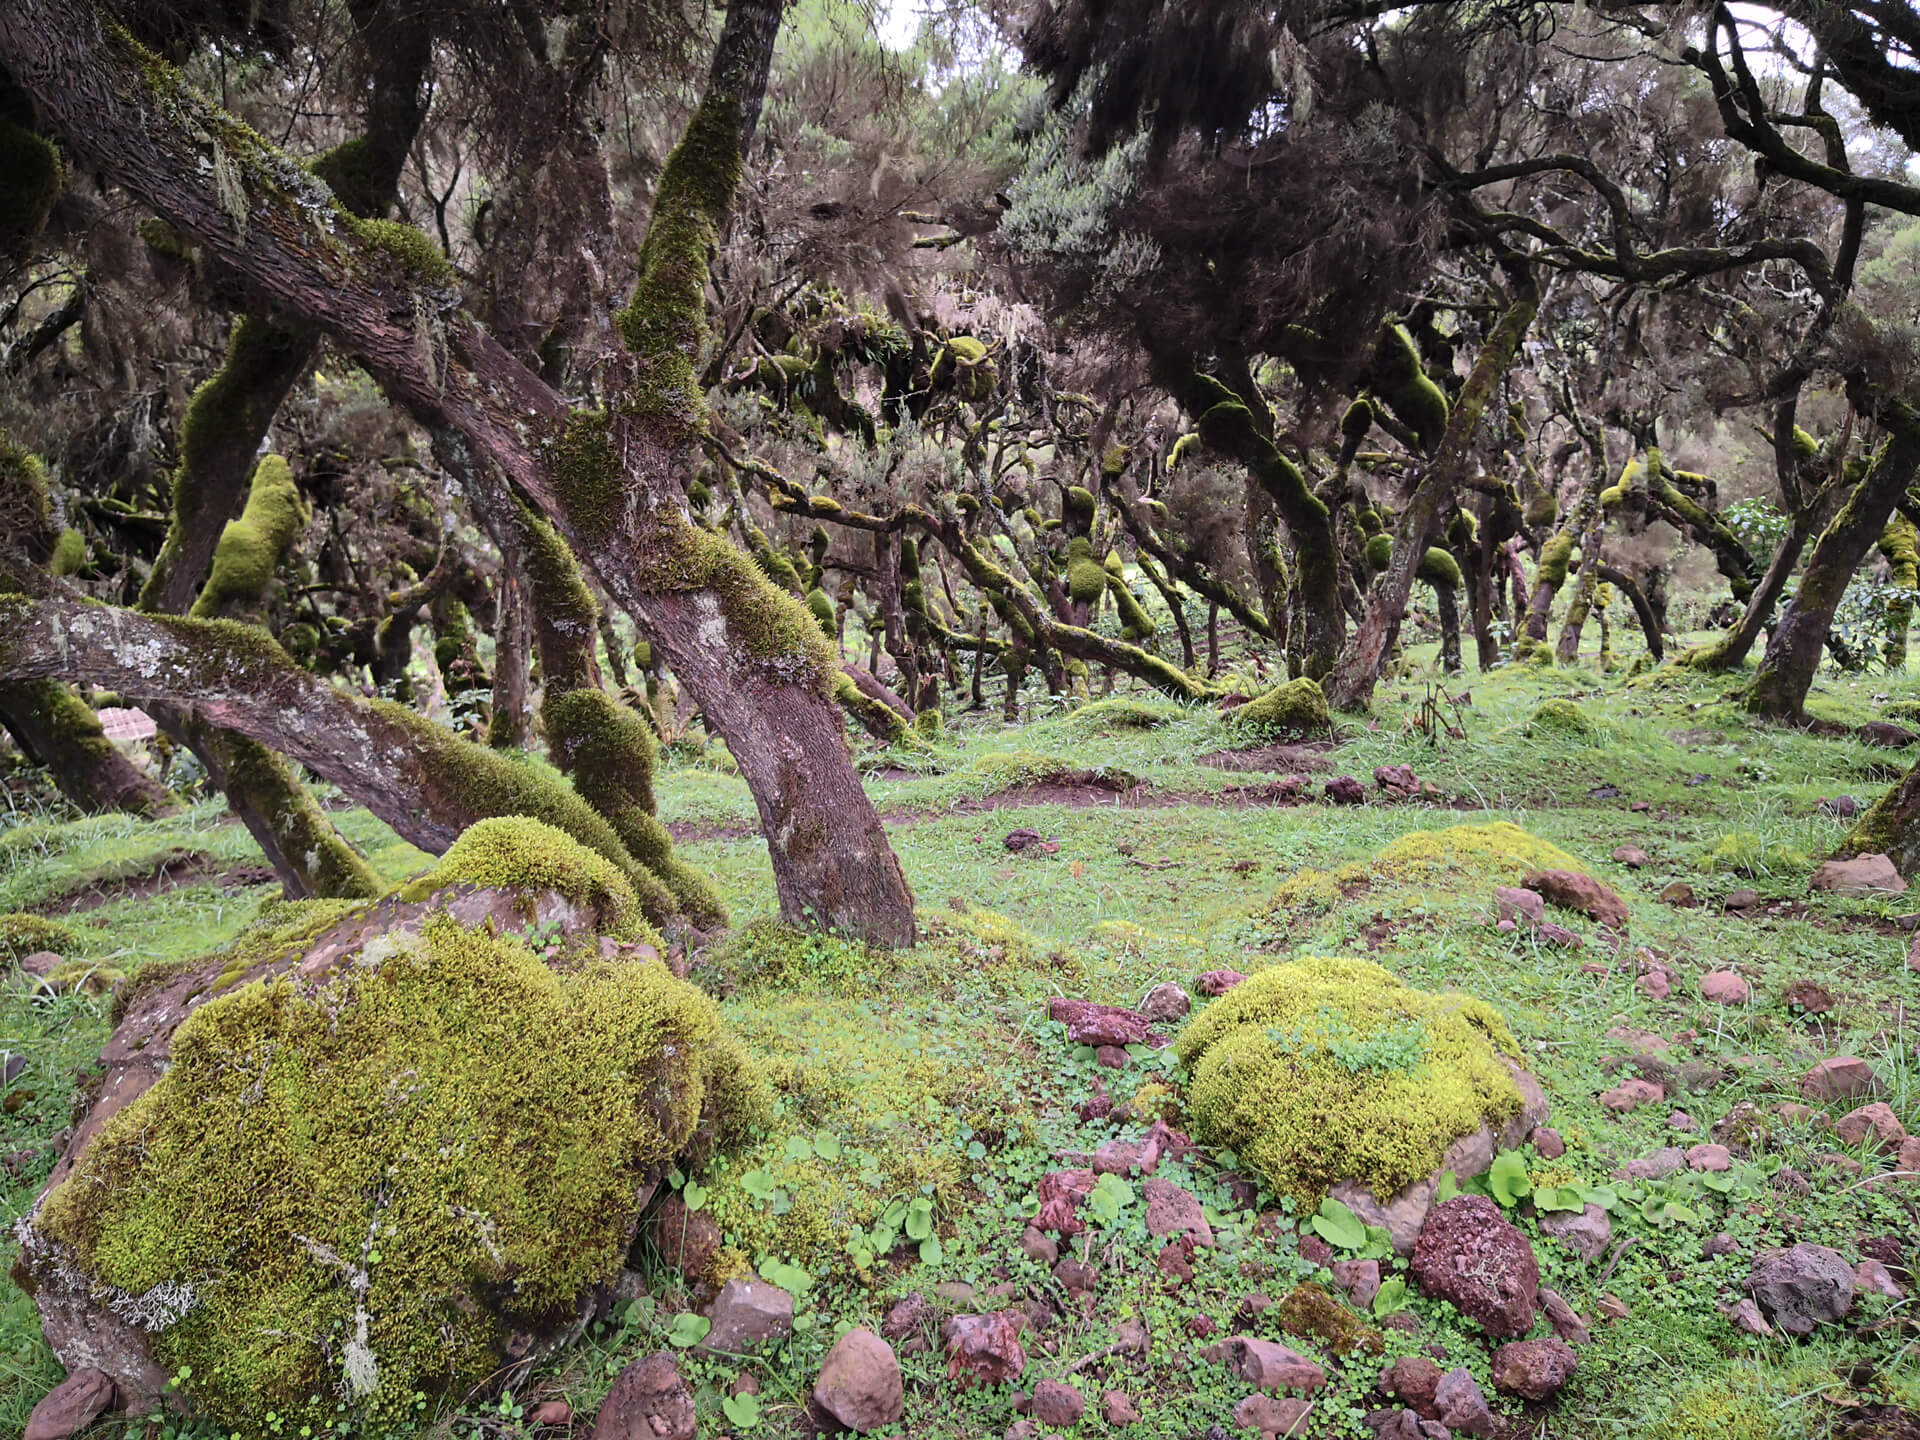 Ethiopia-traveling-tours-company-adventure-Bale mountain-Harena forest